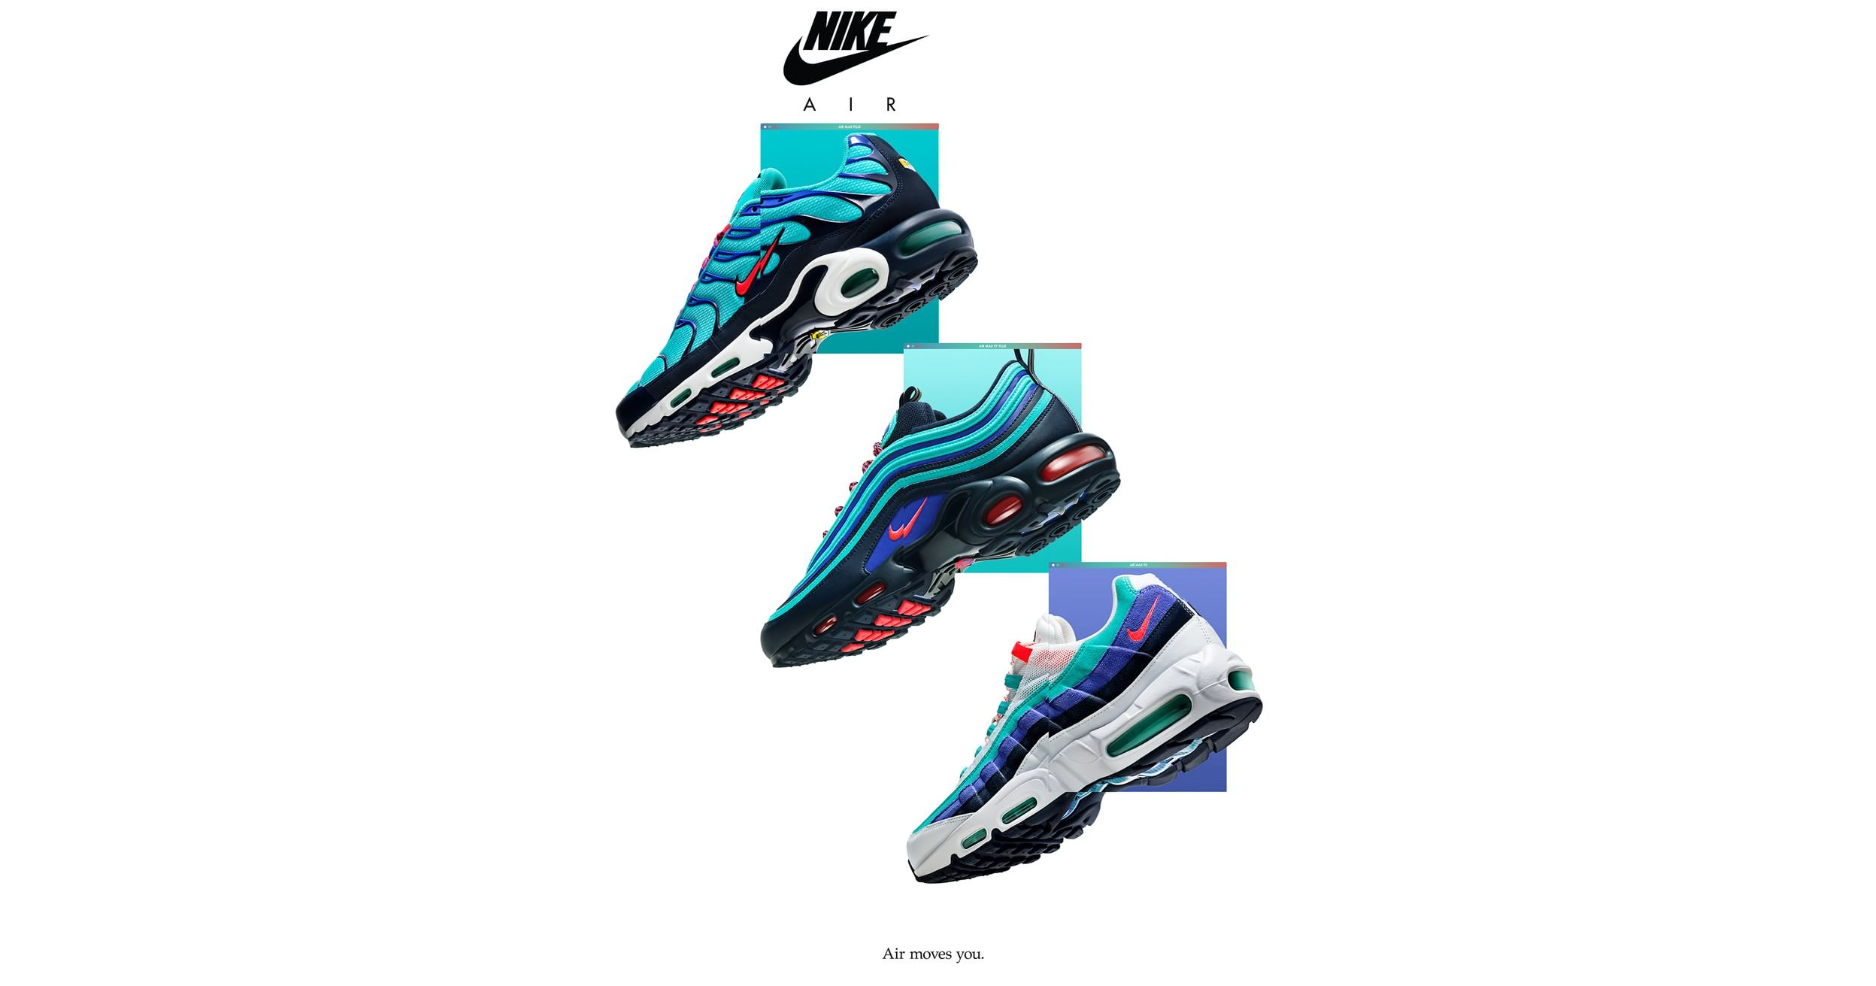 """Release Reminder! The Air Max """"Discover Your Air"""" Pack releases on Thursday!"""